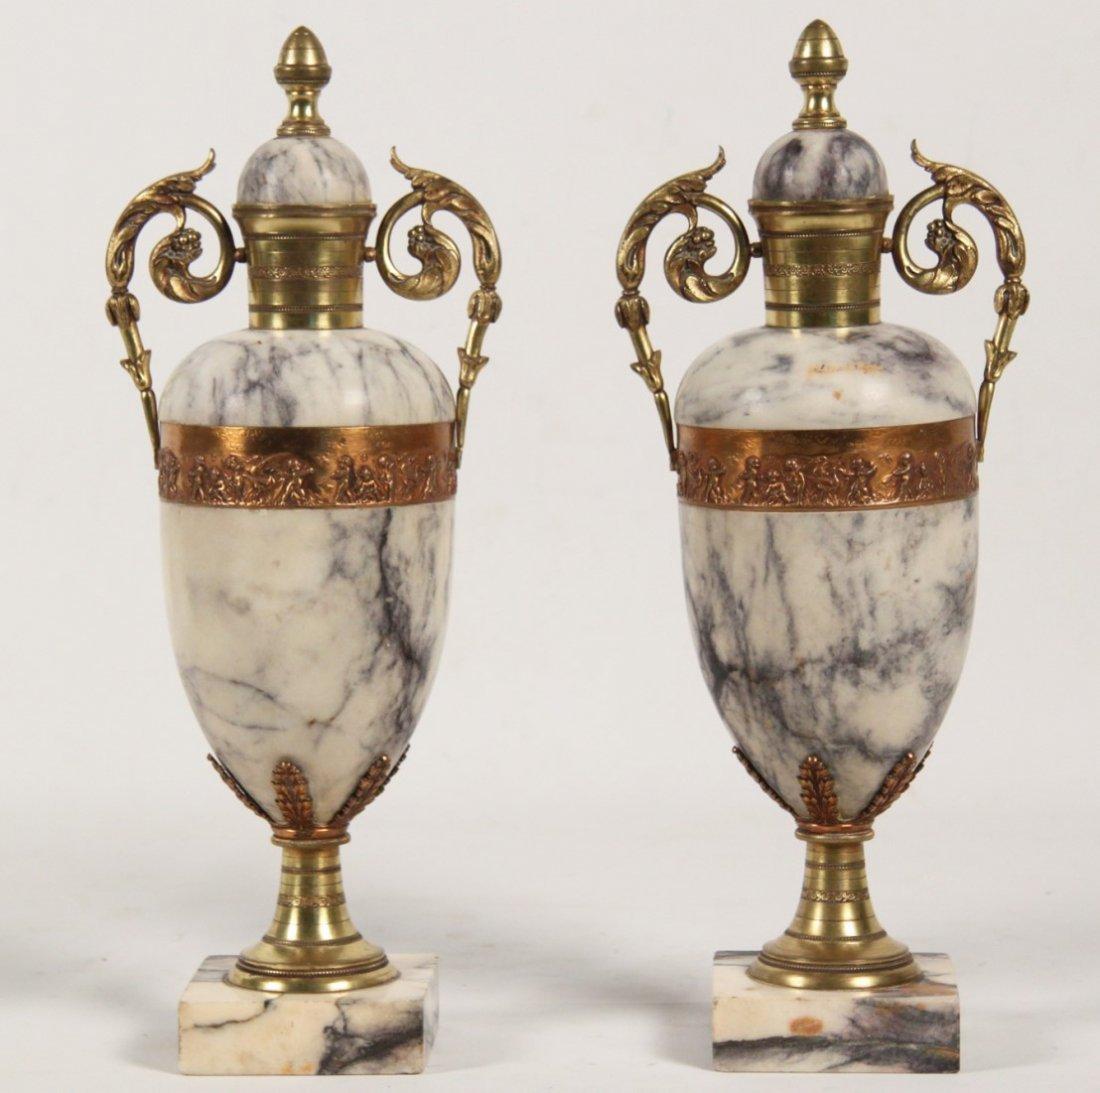 PAIR OF WHITE AND GREY VEINED MARBLE CASSOLETTES